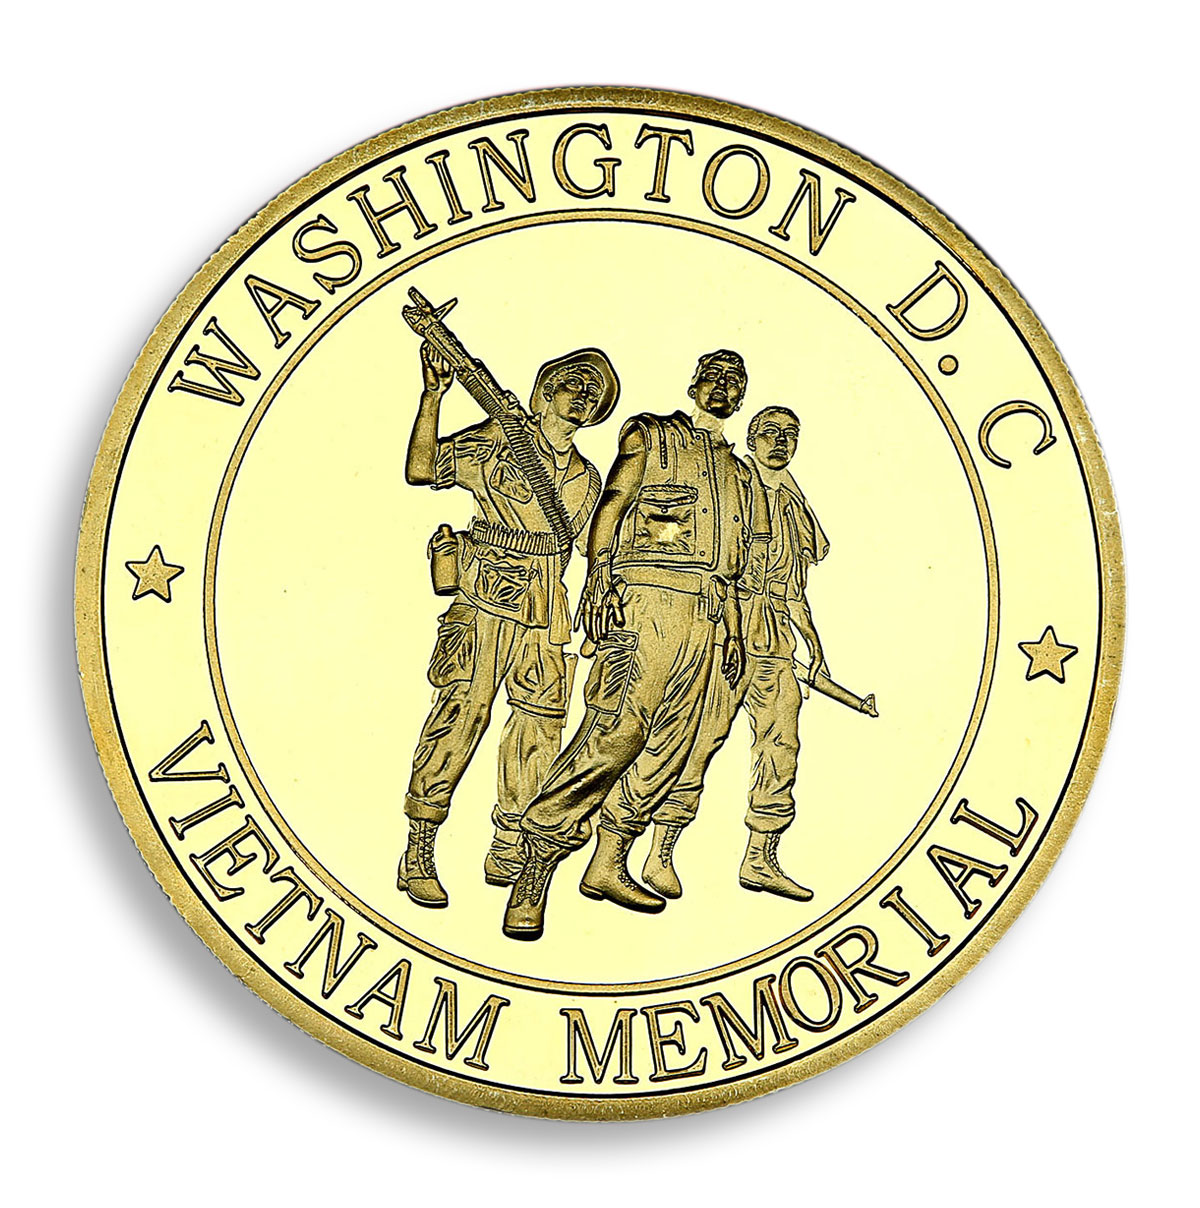 United States Marine Corps Washington DC Vietnam Memorial Gold-Plated Medal